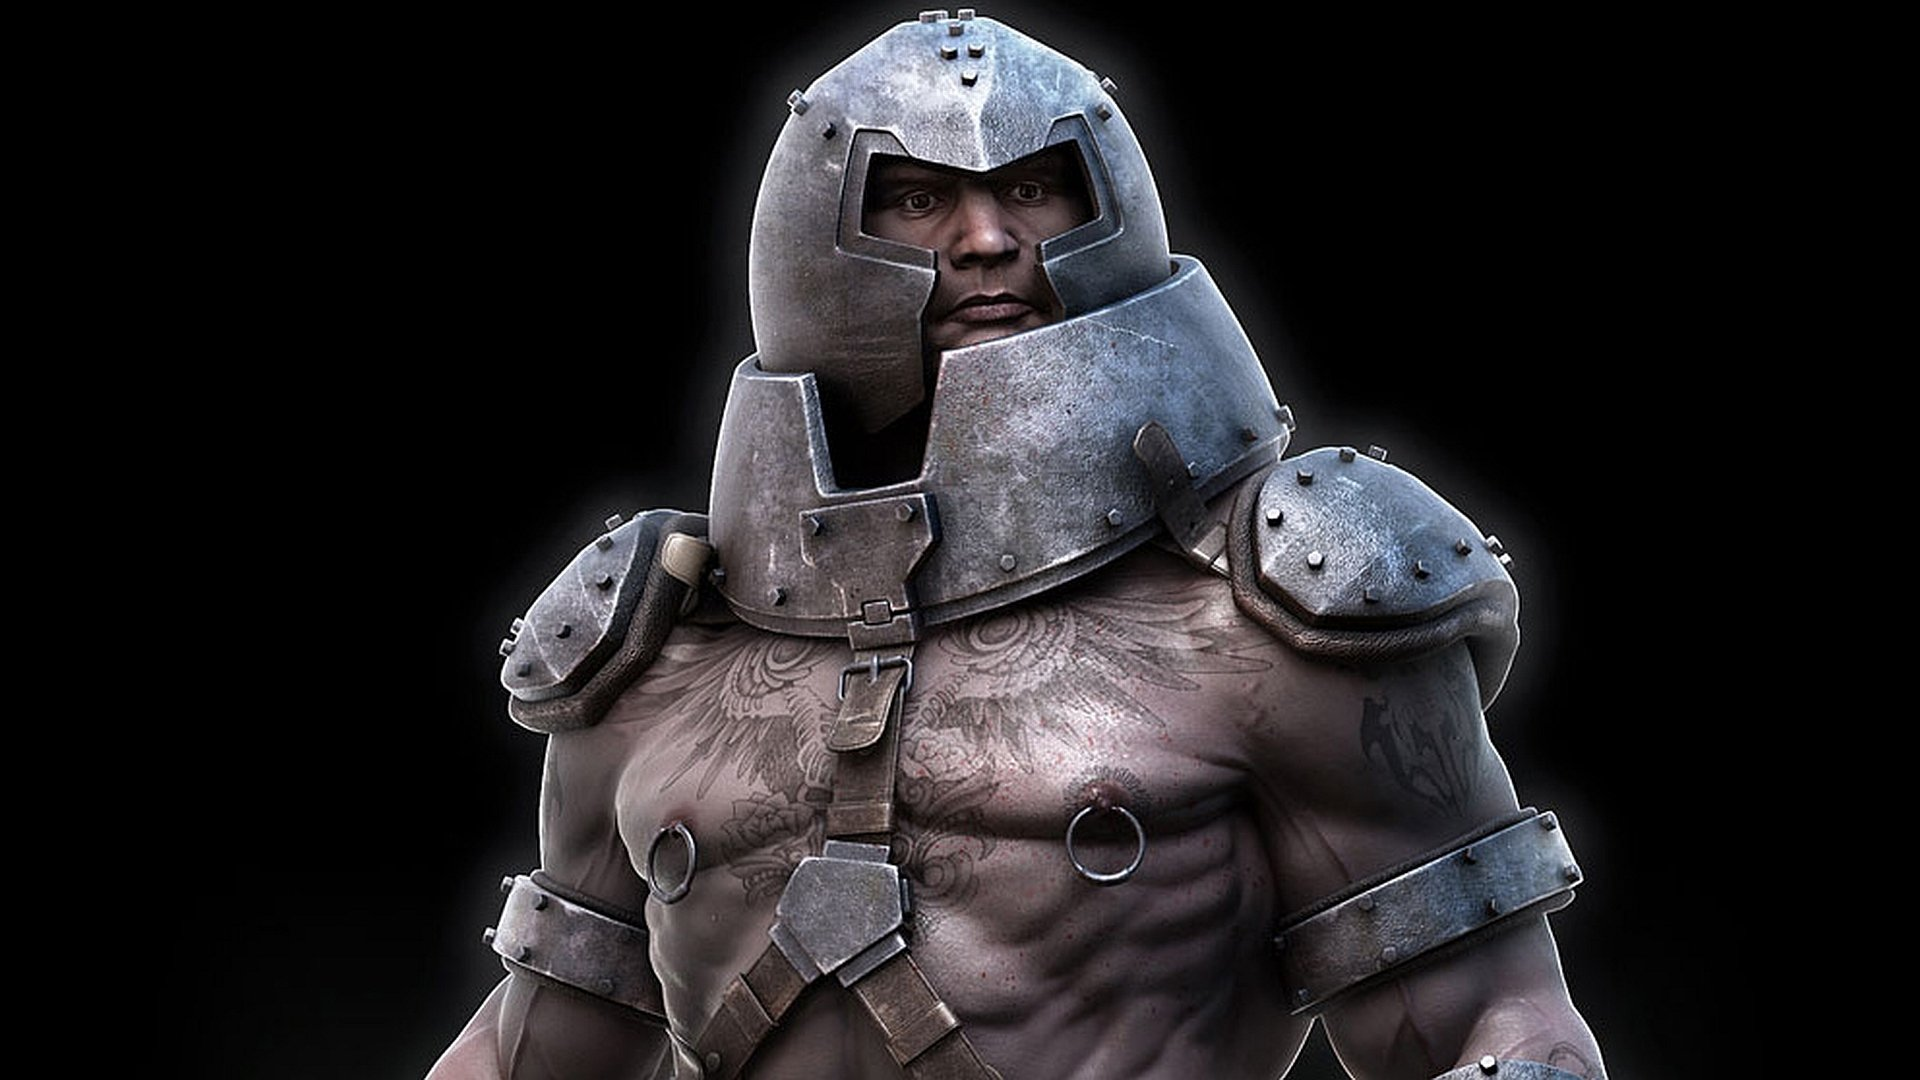 11 Juggernaut Hd Wallpapers Background Images Wallpaper Abyss